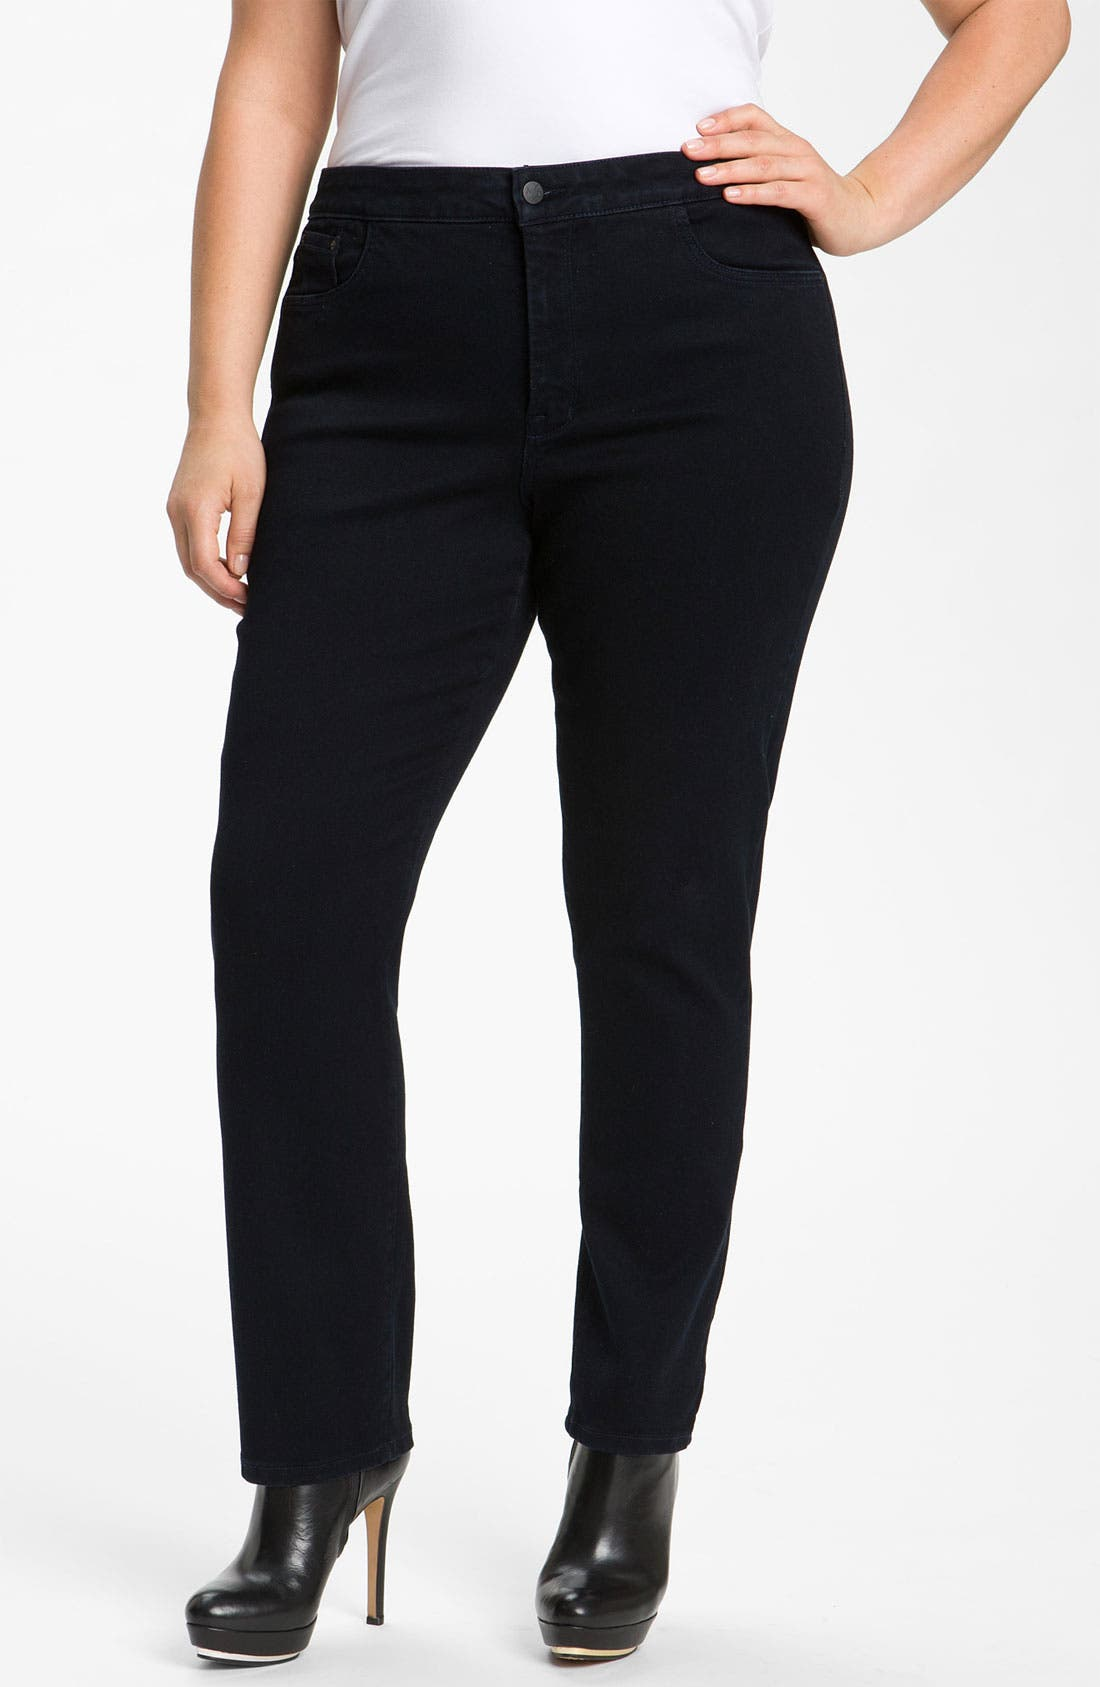 Main Image - NYDJ 'Jaclyn' Stretch Denim Leggings (Plus)